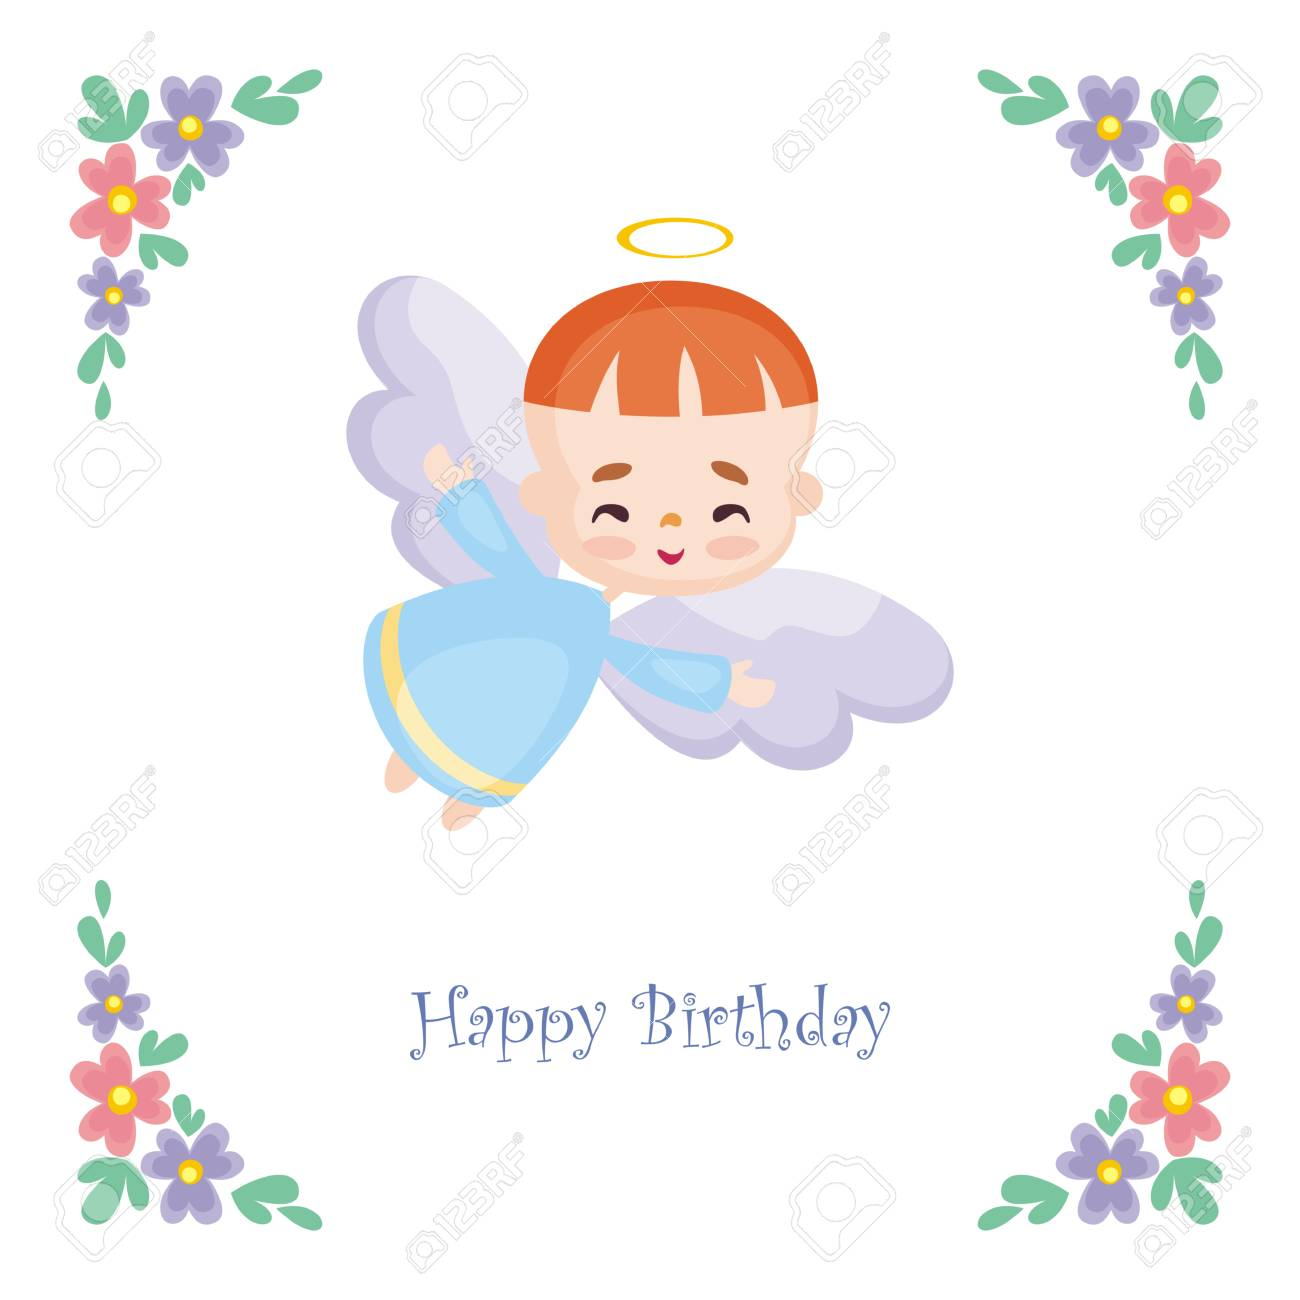 Birthday greeting card with the image of a pretty little angel birthday greeting card with the image of a pretty little angel vector illustration on a m4hsunfo